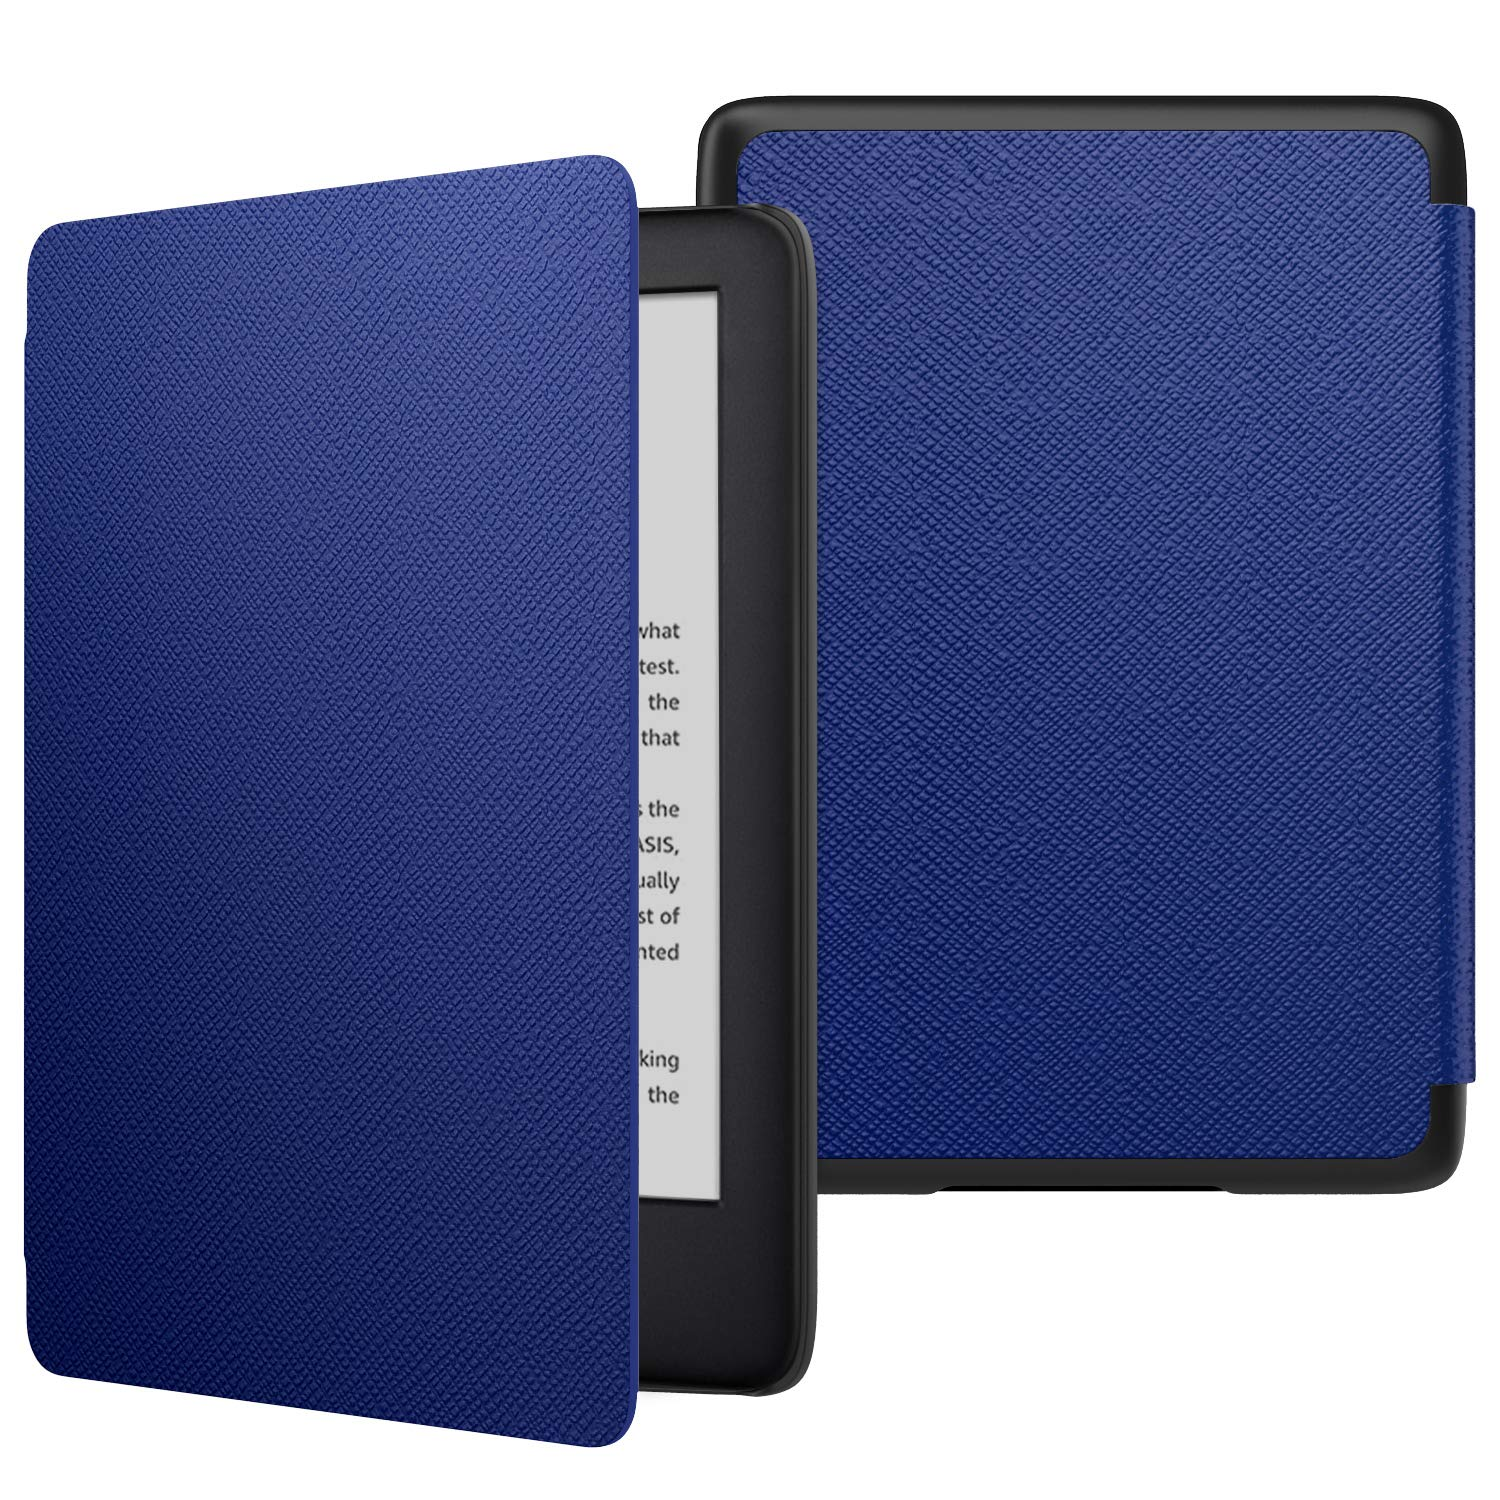 MoKo Case Fits All-New Kindle (10th Generation - 2019 Release Only), Thinnest Protective Shell Cover with Auto Wake/Sleep, Will Not Fit Kindle Paperwhite 10th Generation 2018 - Indigo